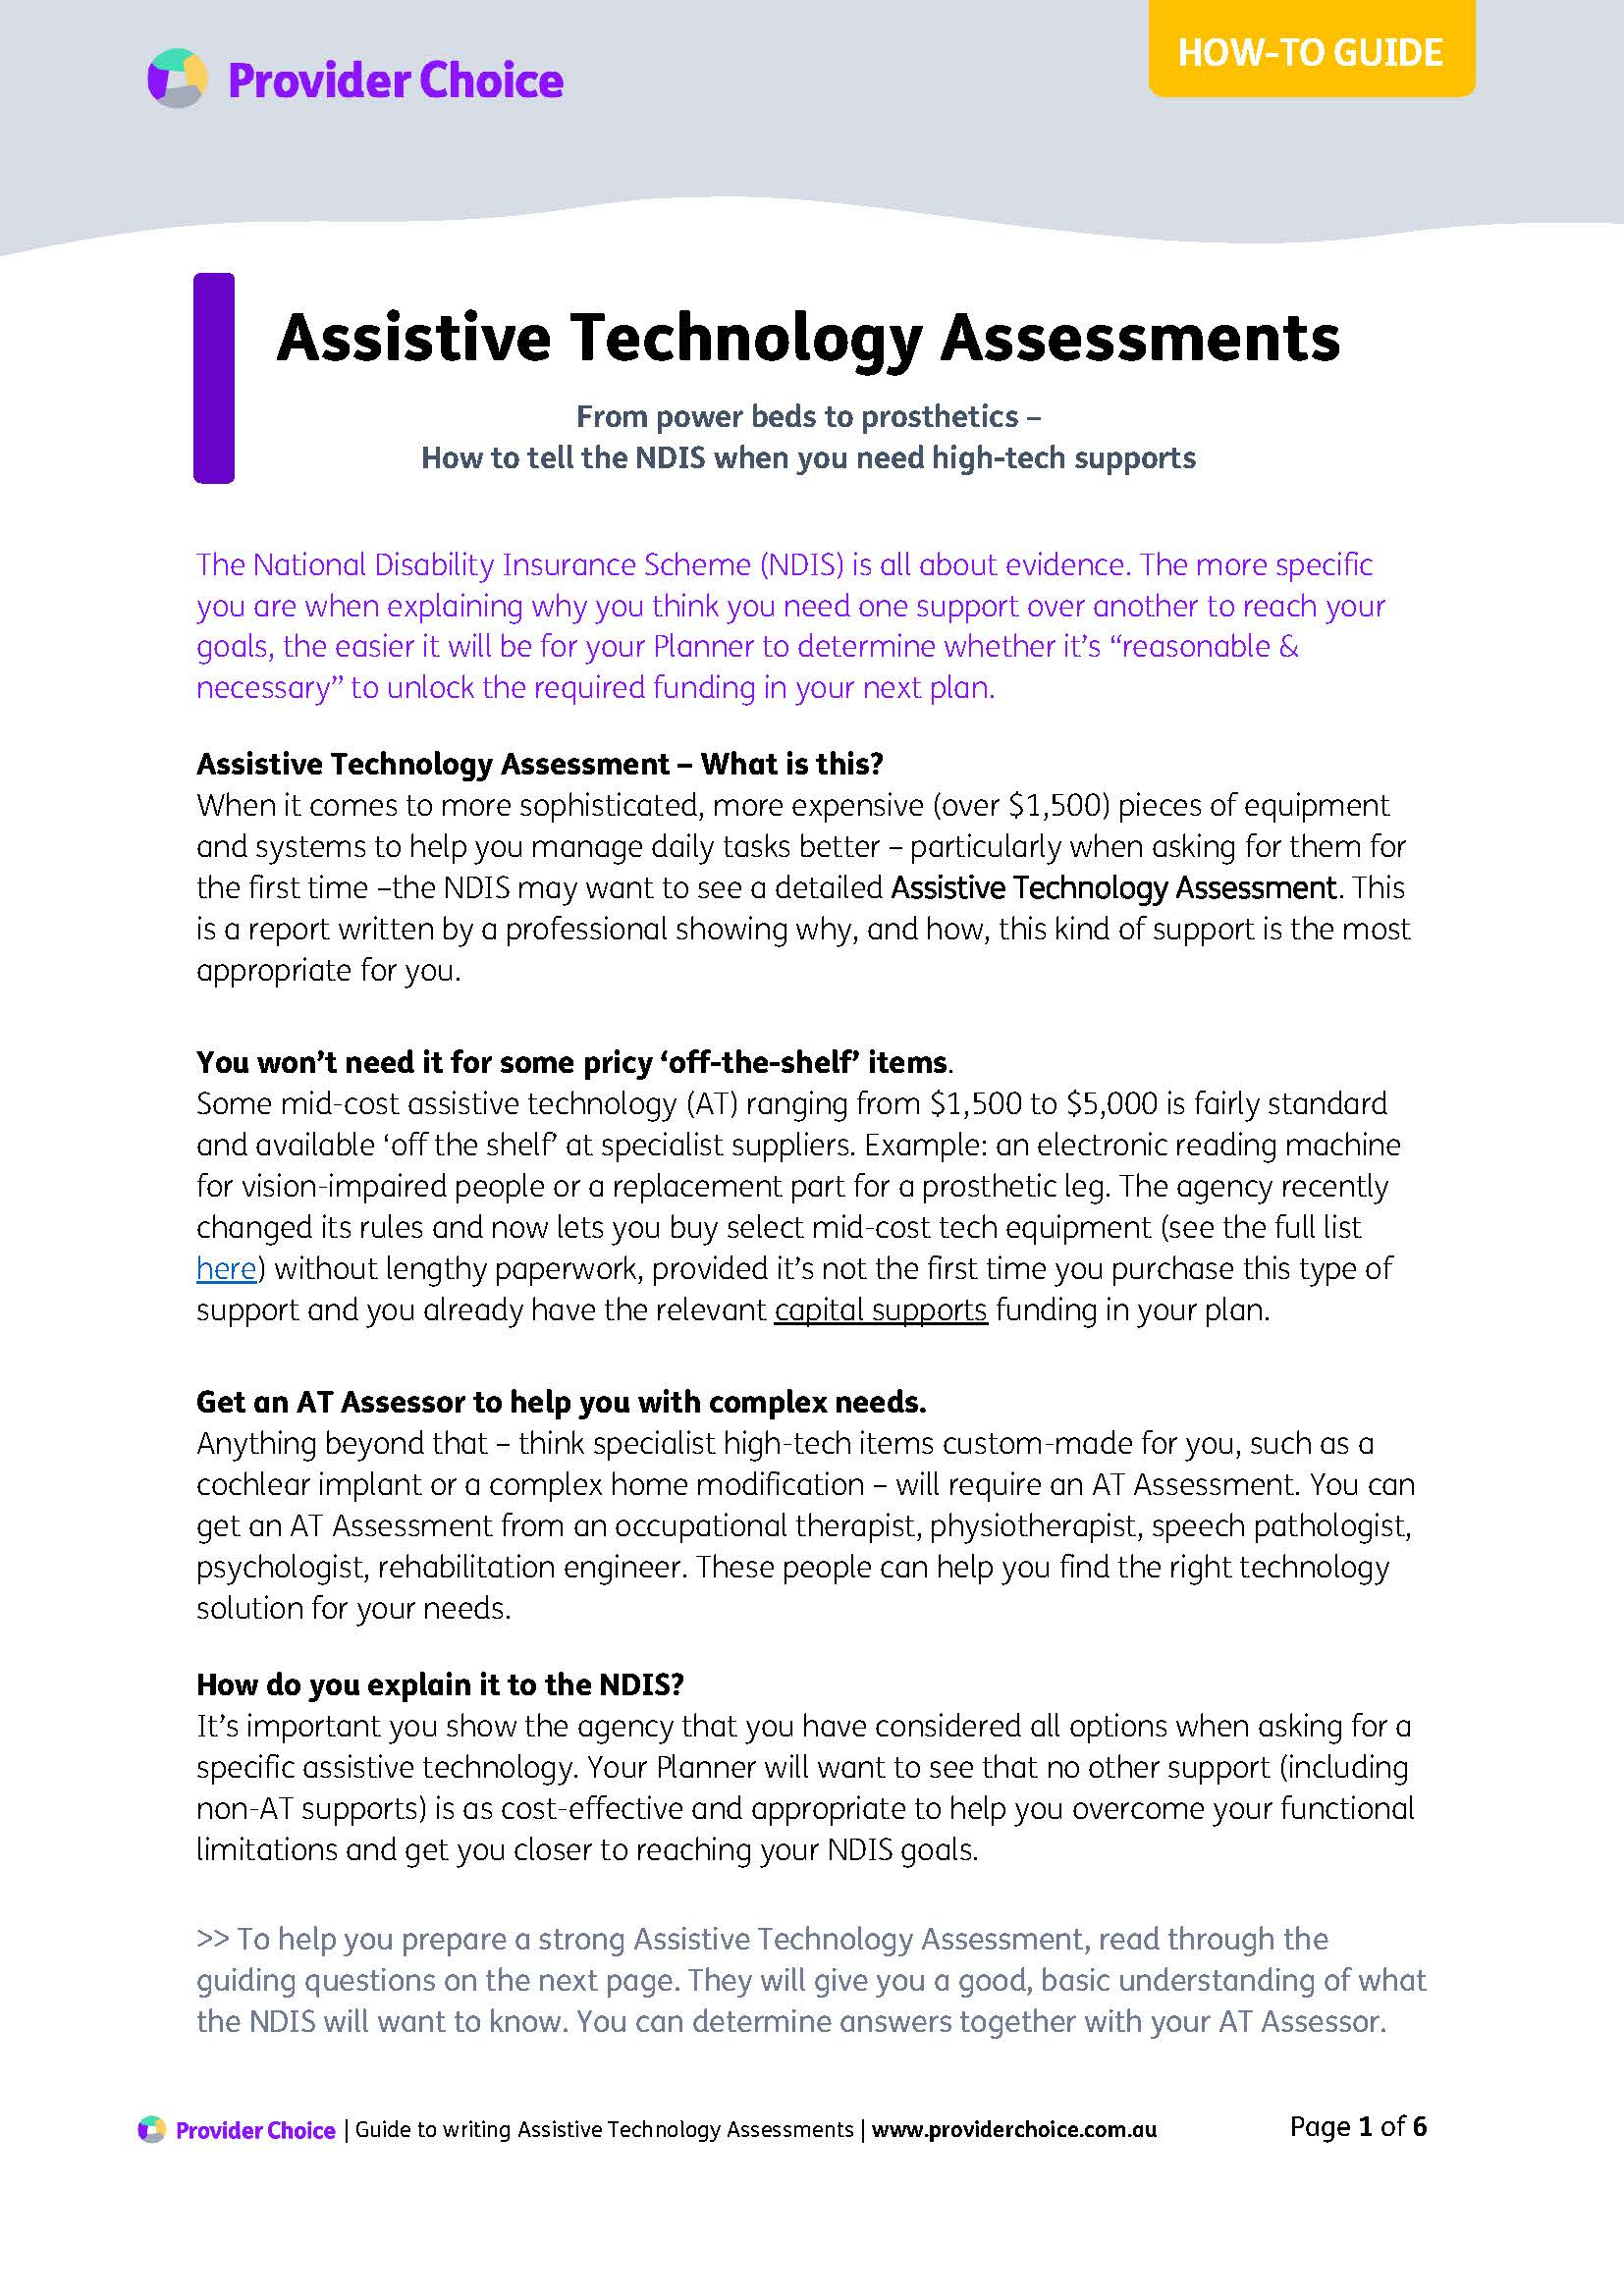 Factsheet: How to tell the NDIS you need funding for complex assistive technology